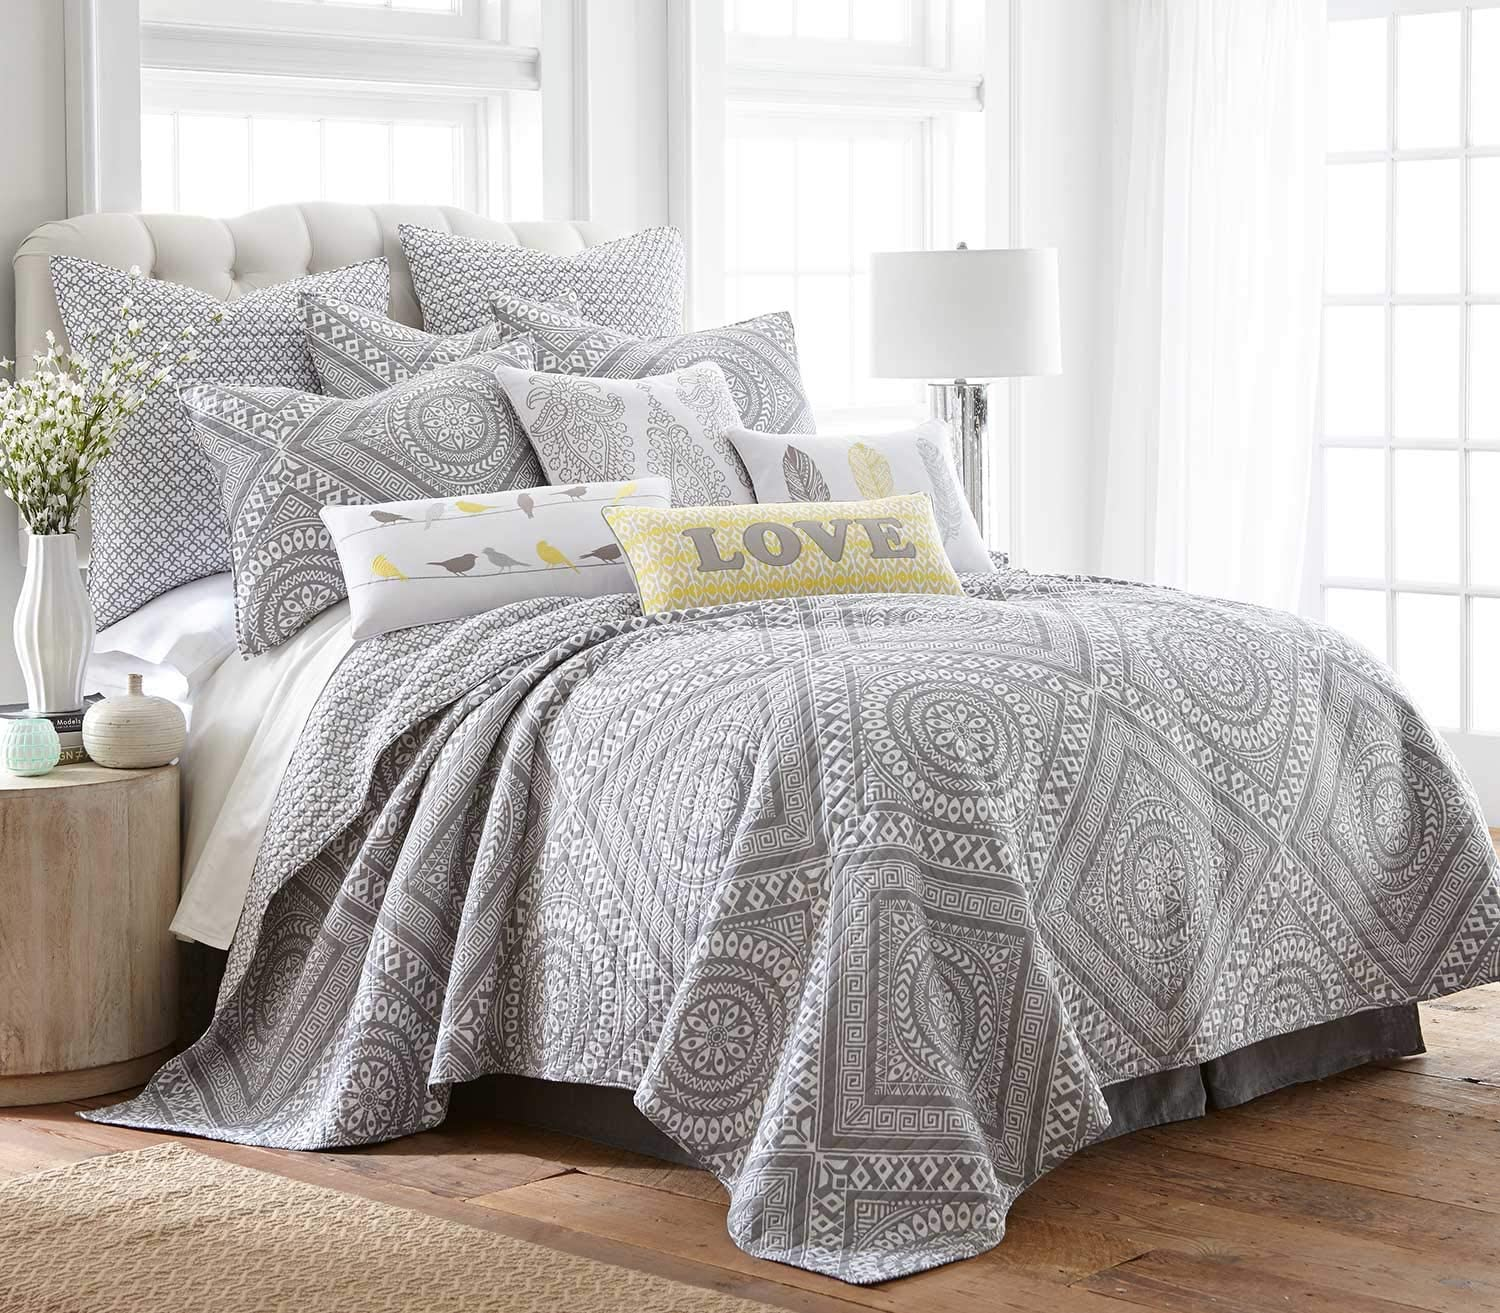 levtex home bilbo grey quilt set king quilt two king pillow shams grecian tile medallion in grey and white quilt size 106x92in and pillow